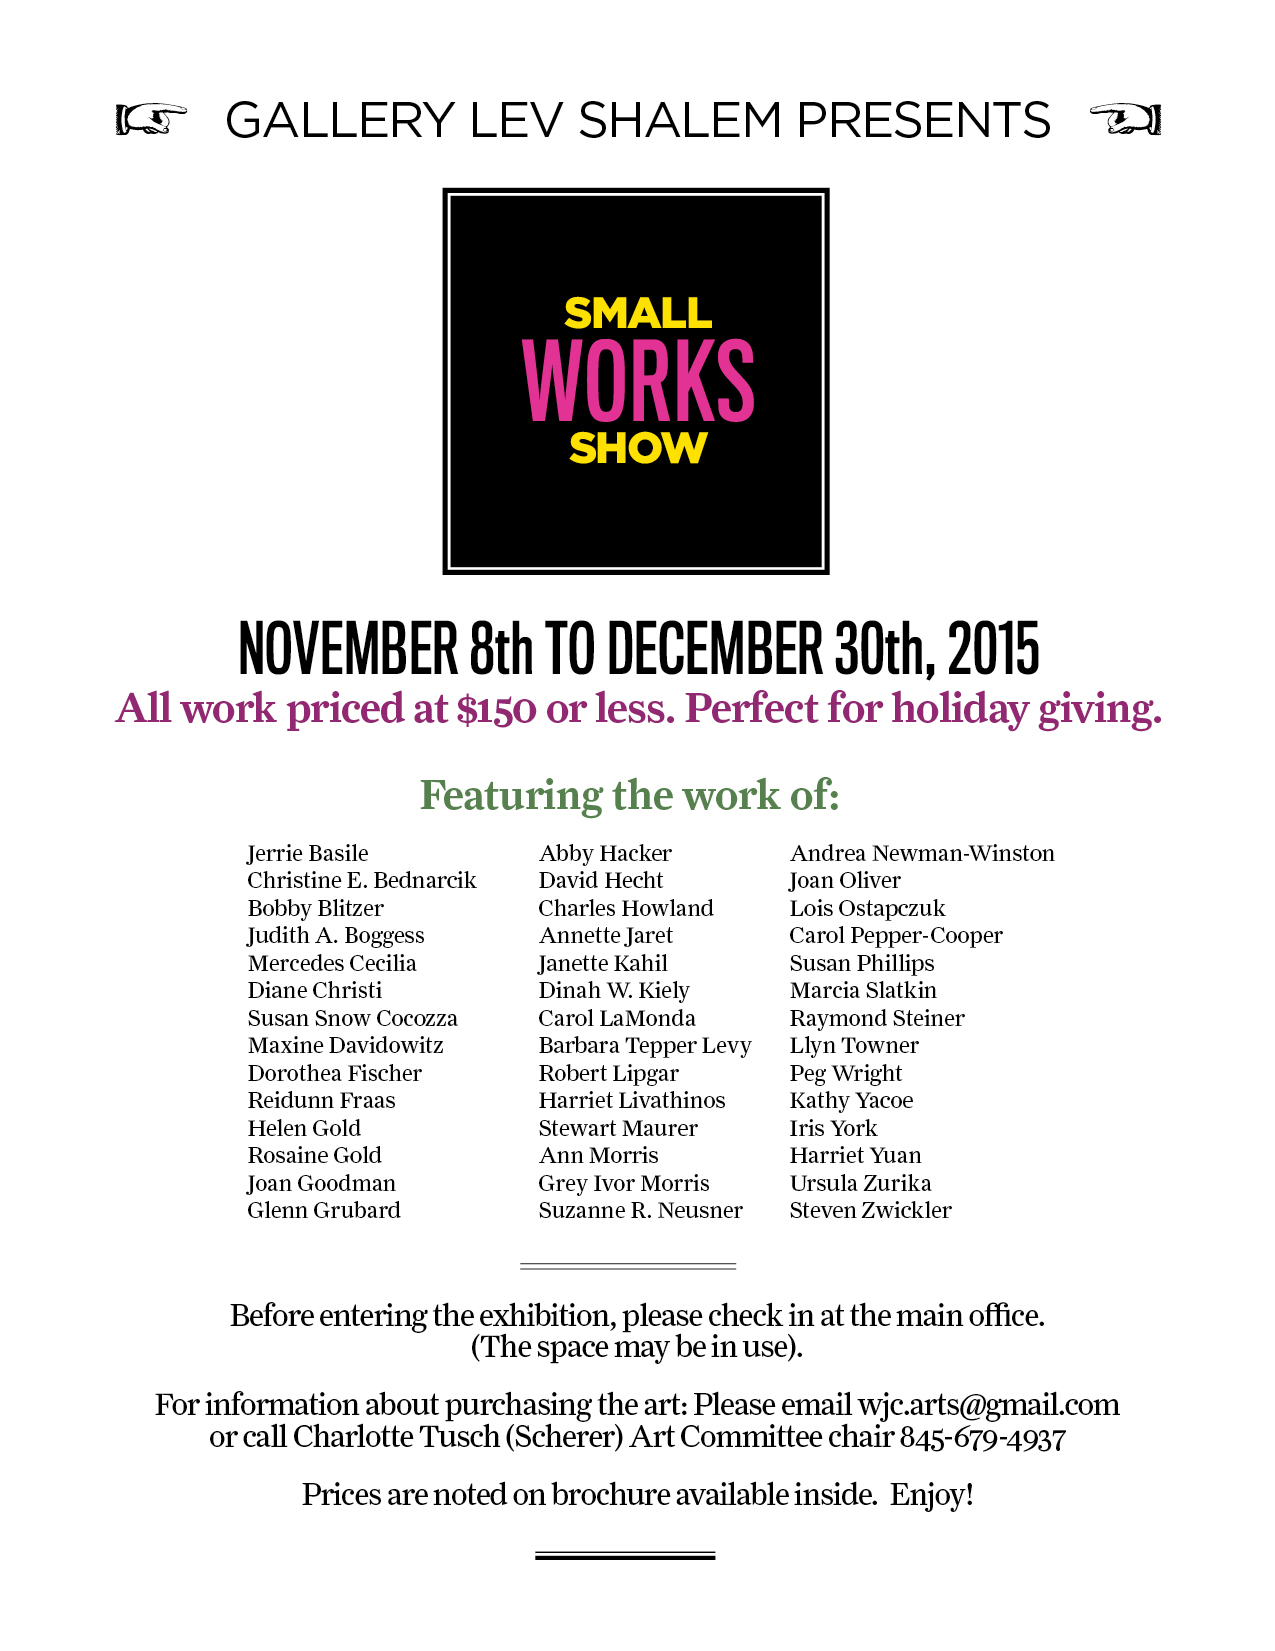 2nd Annual Small Works Show: November 8 - December 30, 2015